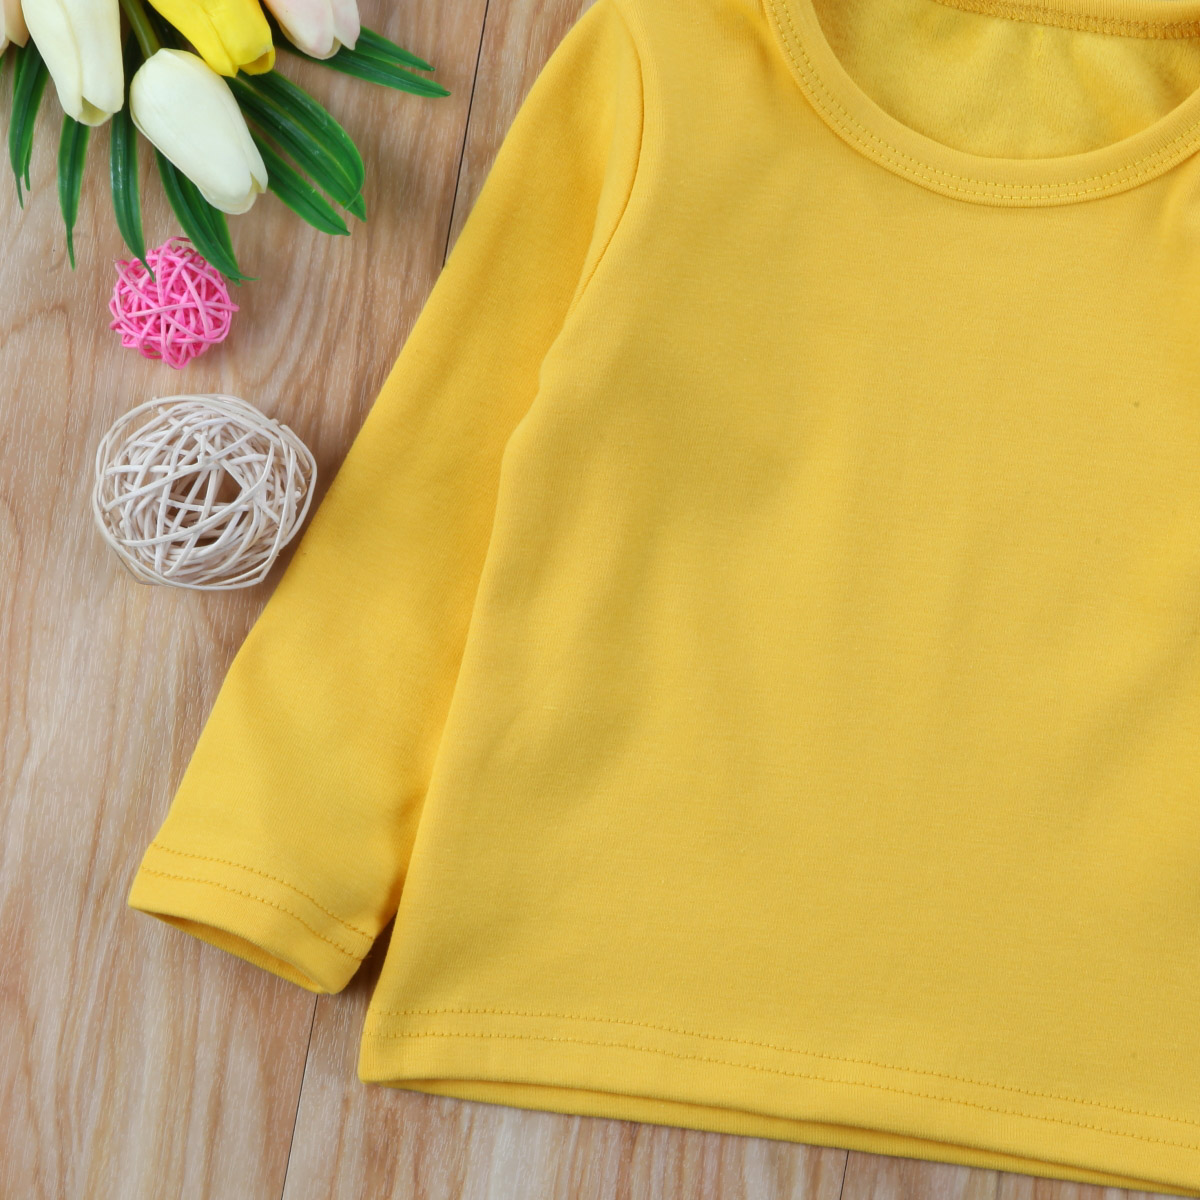 Toddler Infant Kids Baby Boys Girls Cotton Warm Clothes Tops Outwears 4